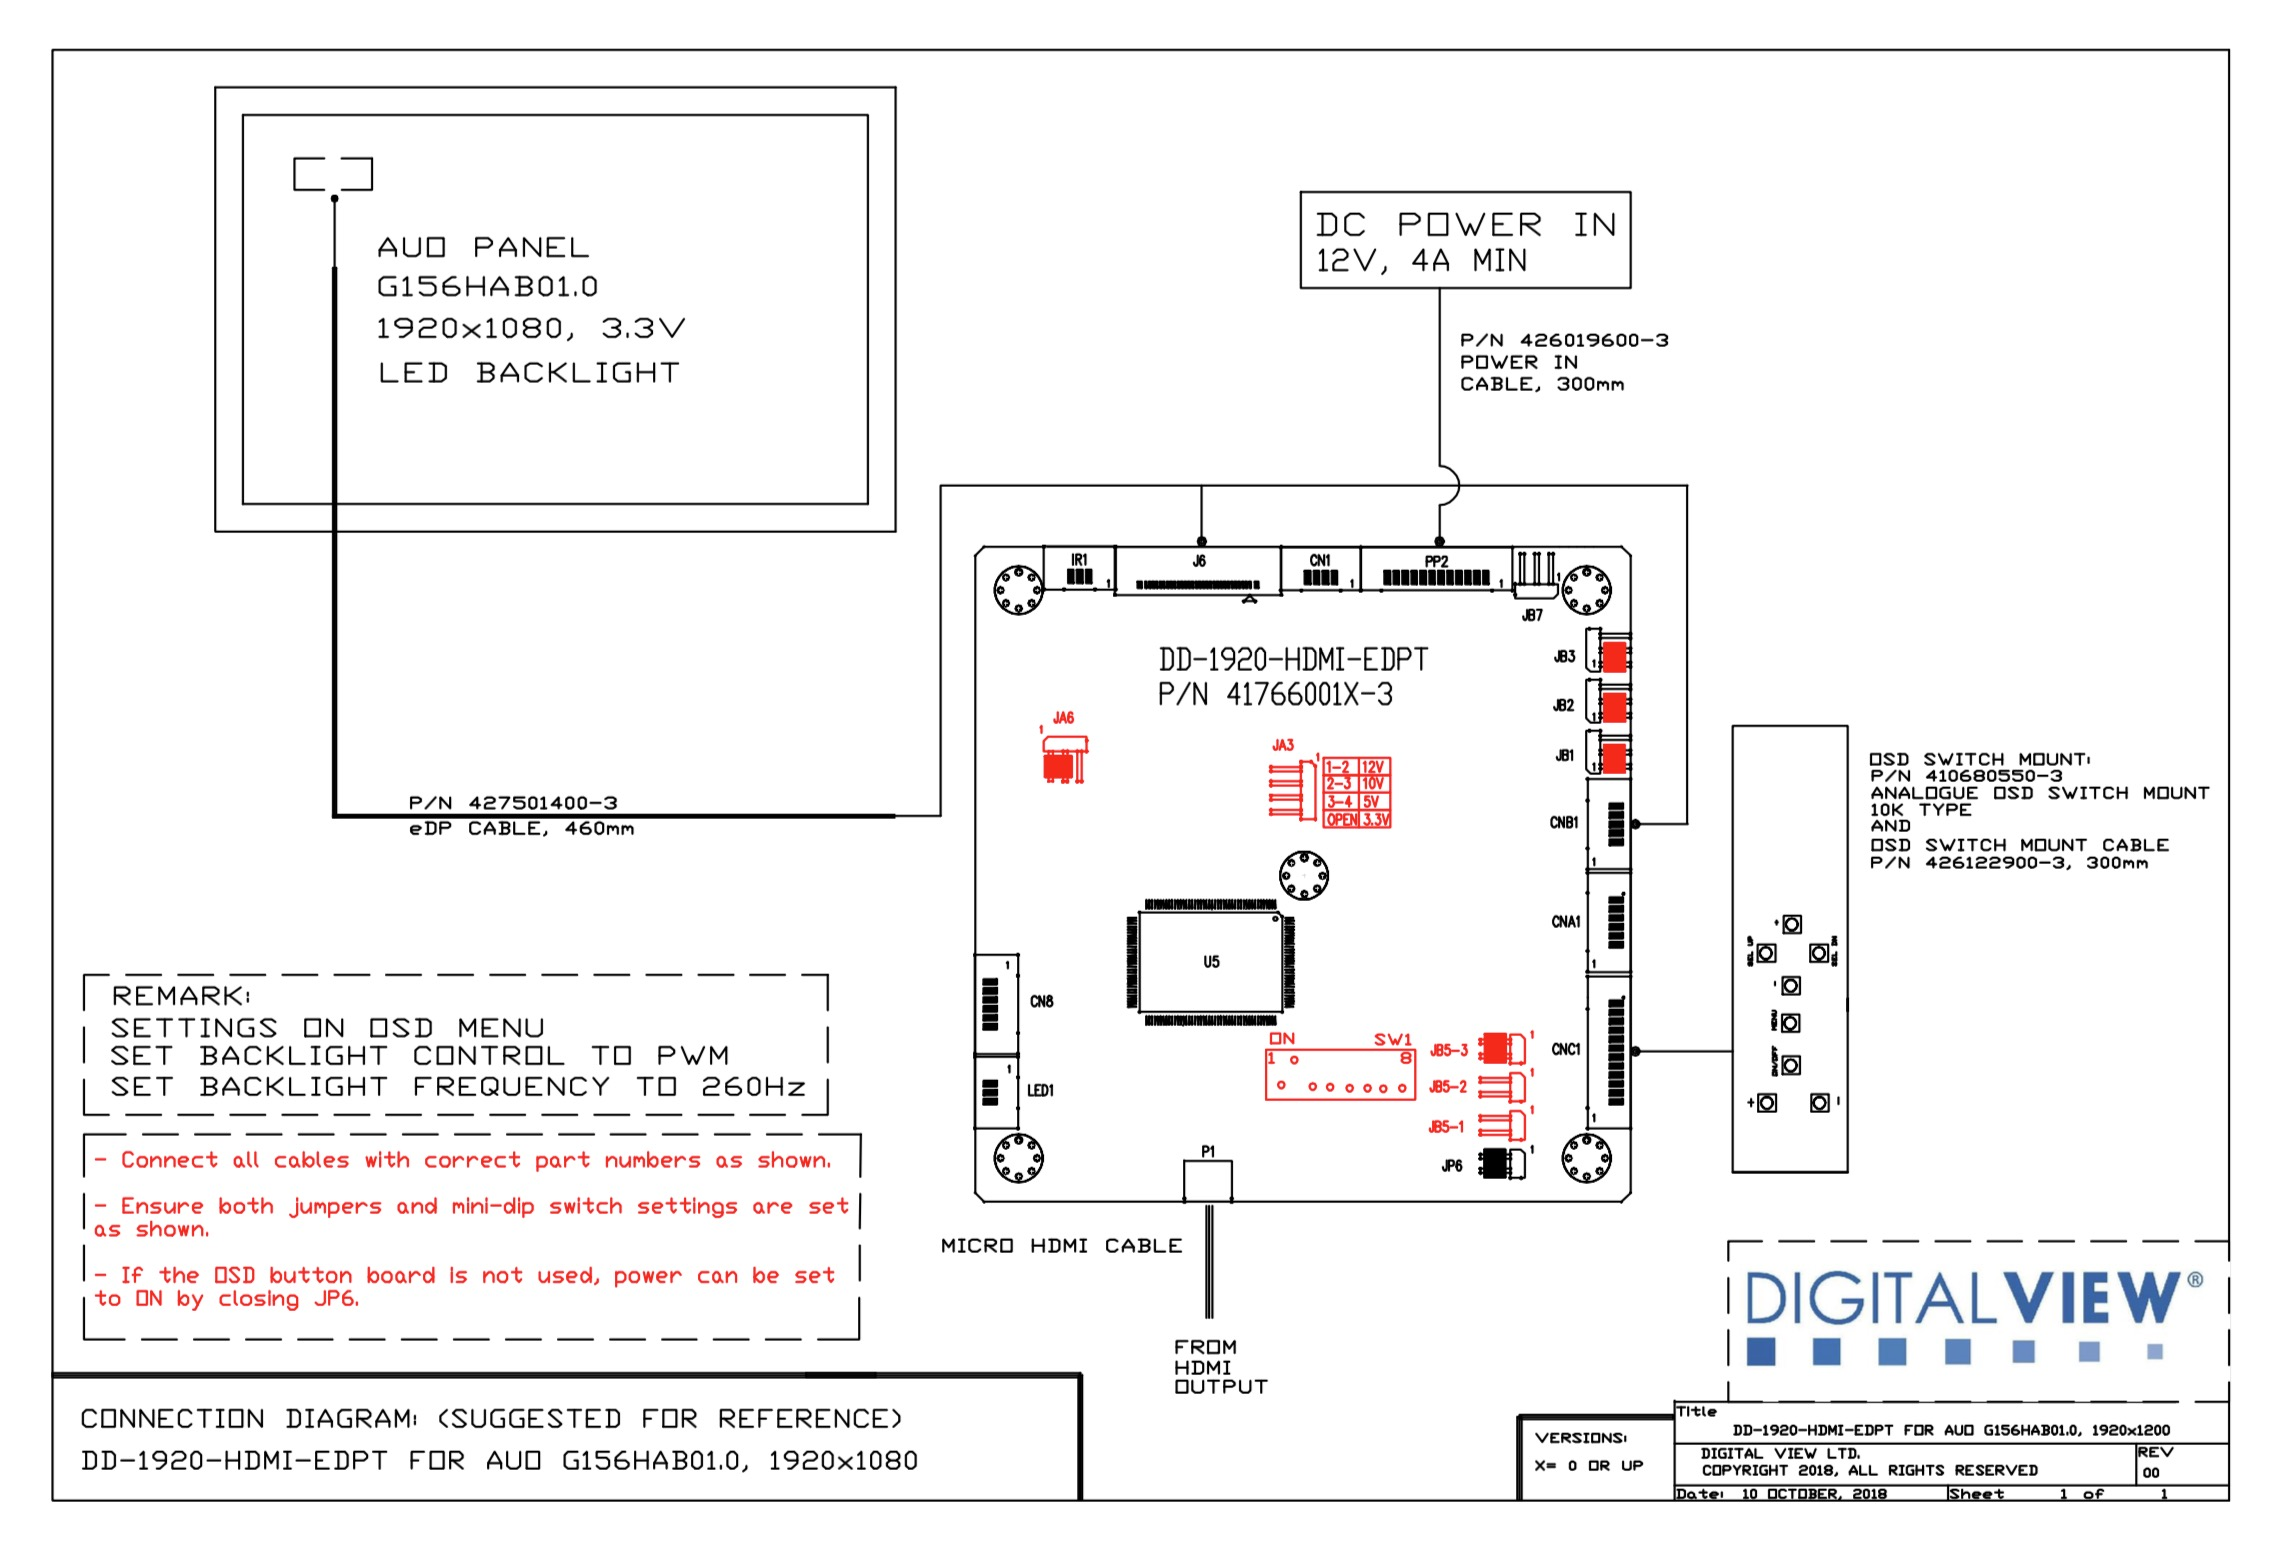 DD-1920-HDMI-EDPT_417660010-3_AUO_G156HAB01.0_1920x1080_Suggested_Rev00